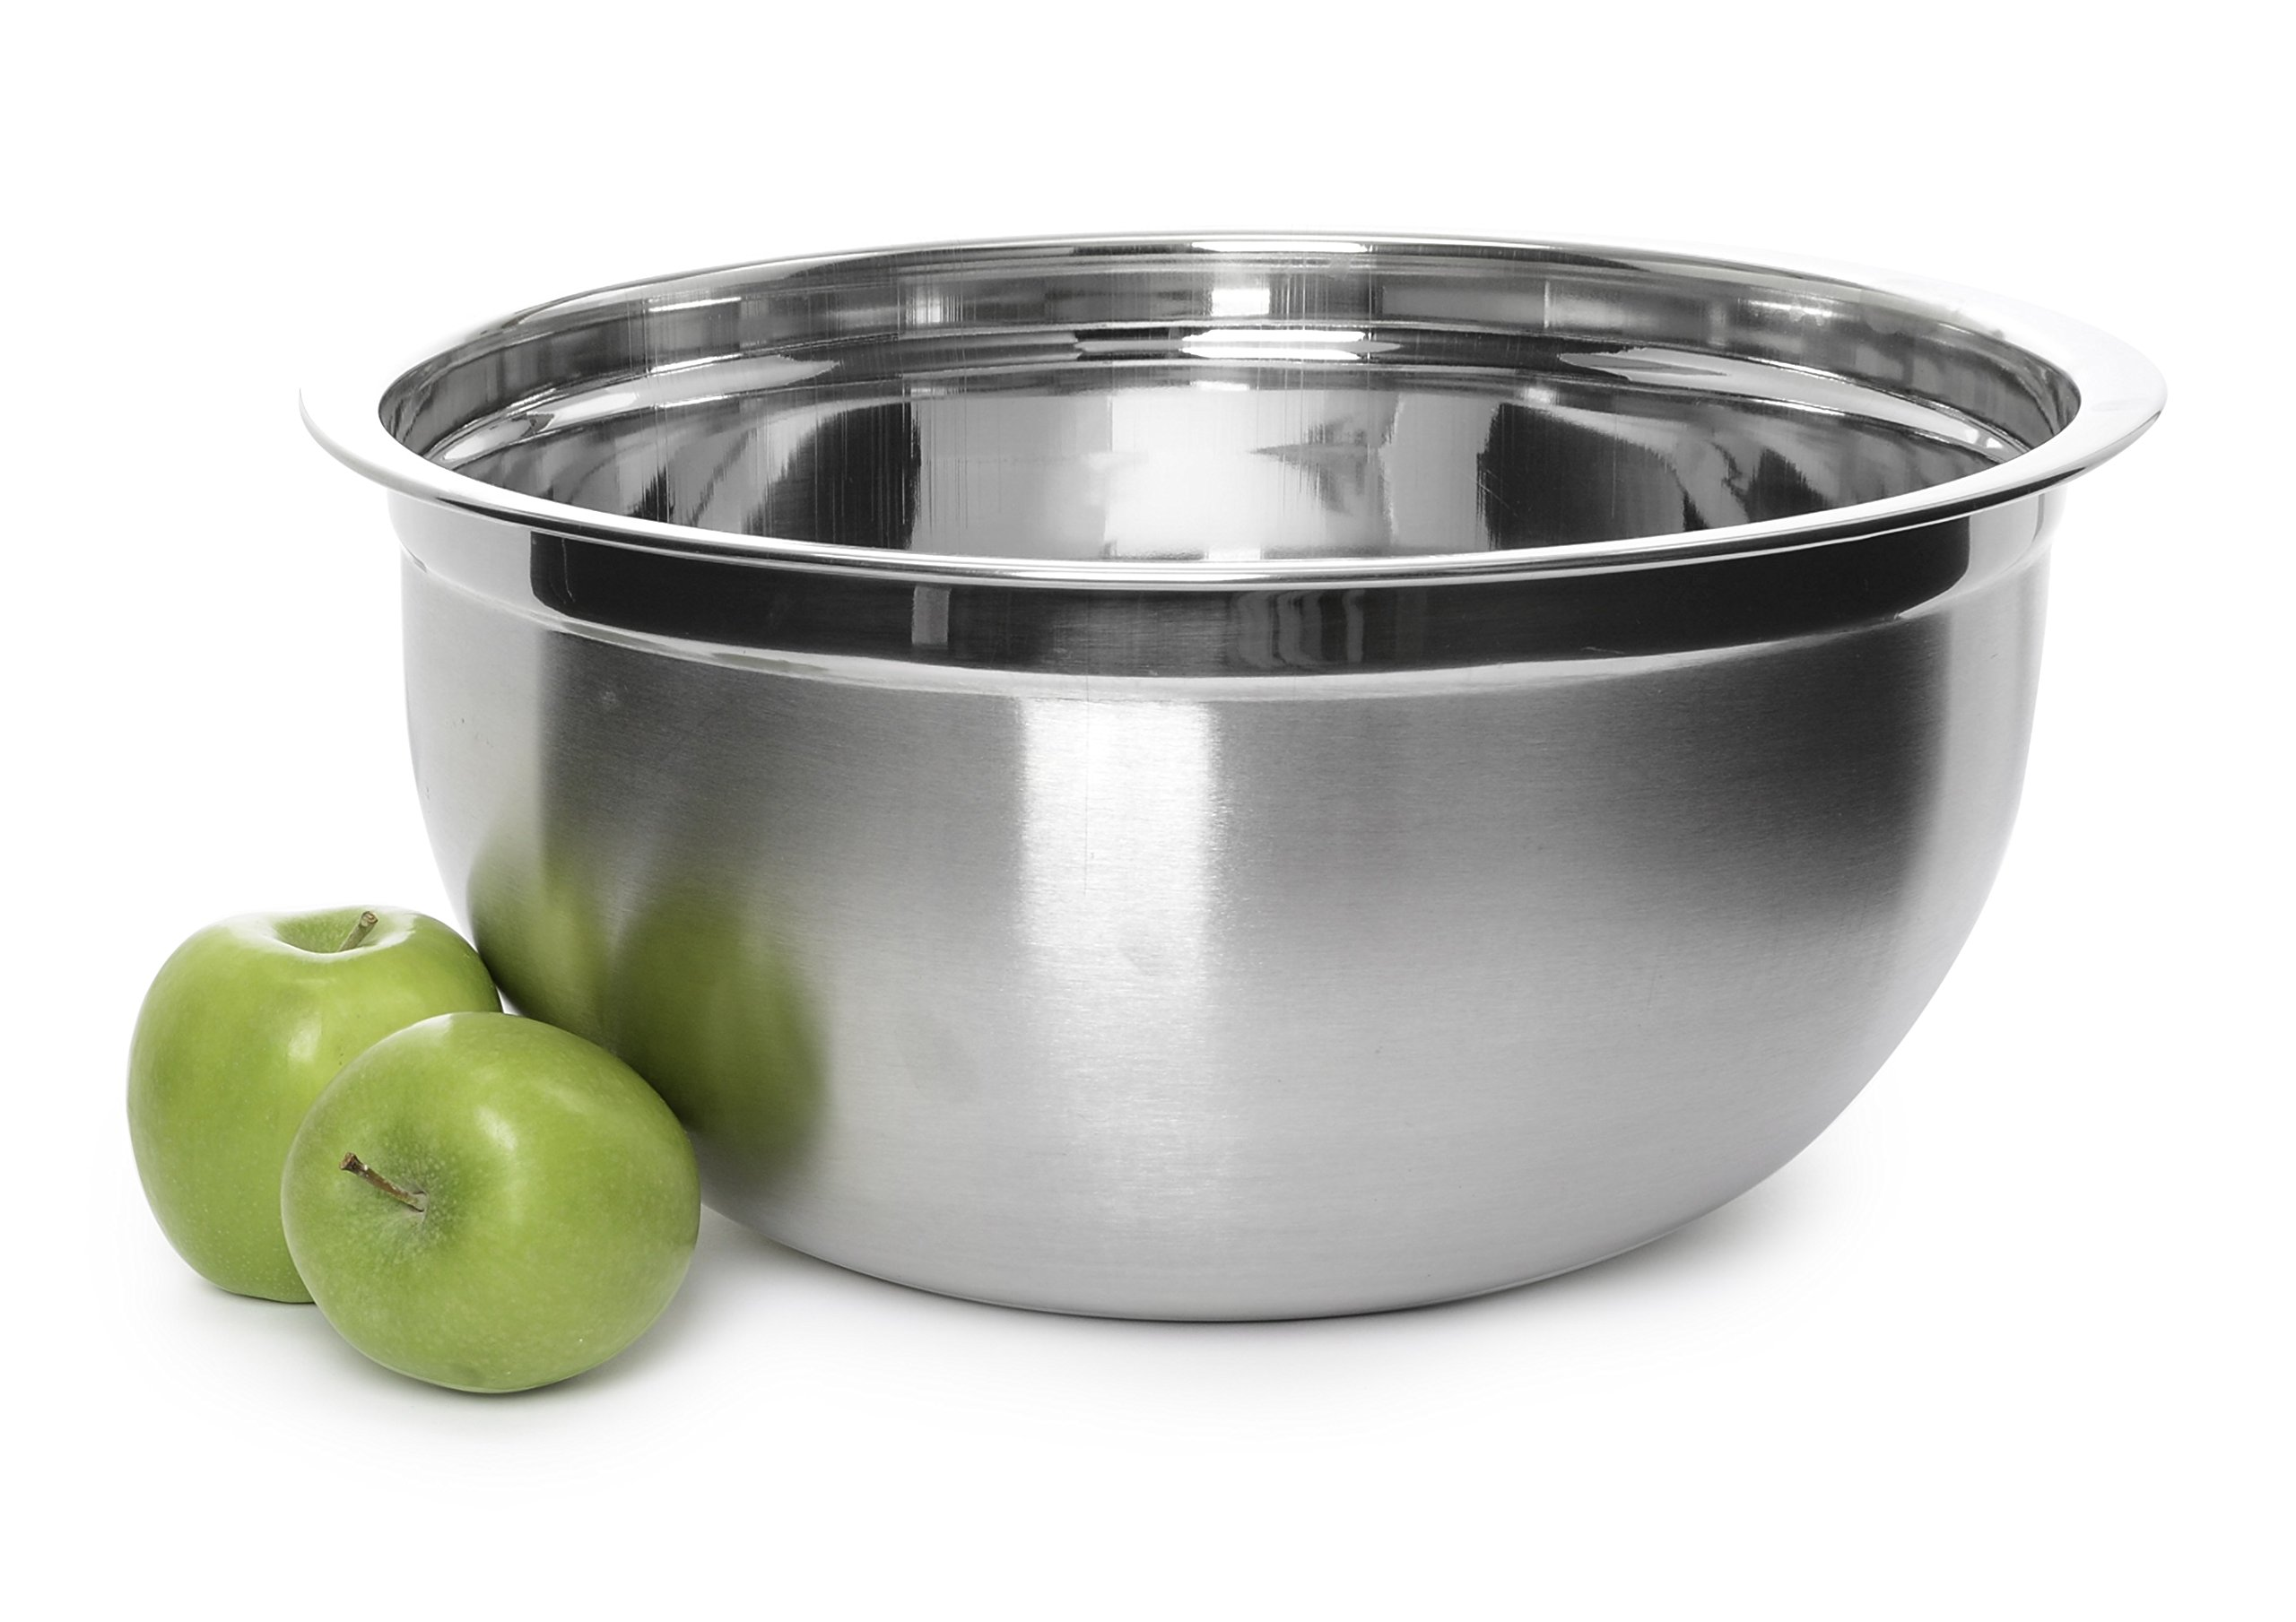 YBMHOME DEEP PROFESSIONAL QUALITY STAINLESS STEEL MIXING BOWL FOR SERVING MIXING BAKING OR COOKING 1192 (1, 16 Quart) by YBM HOME